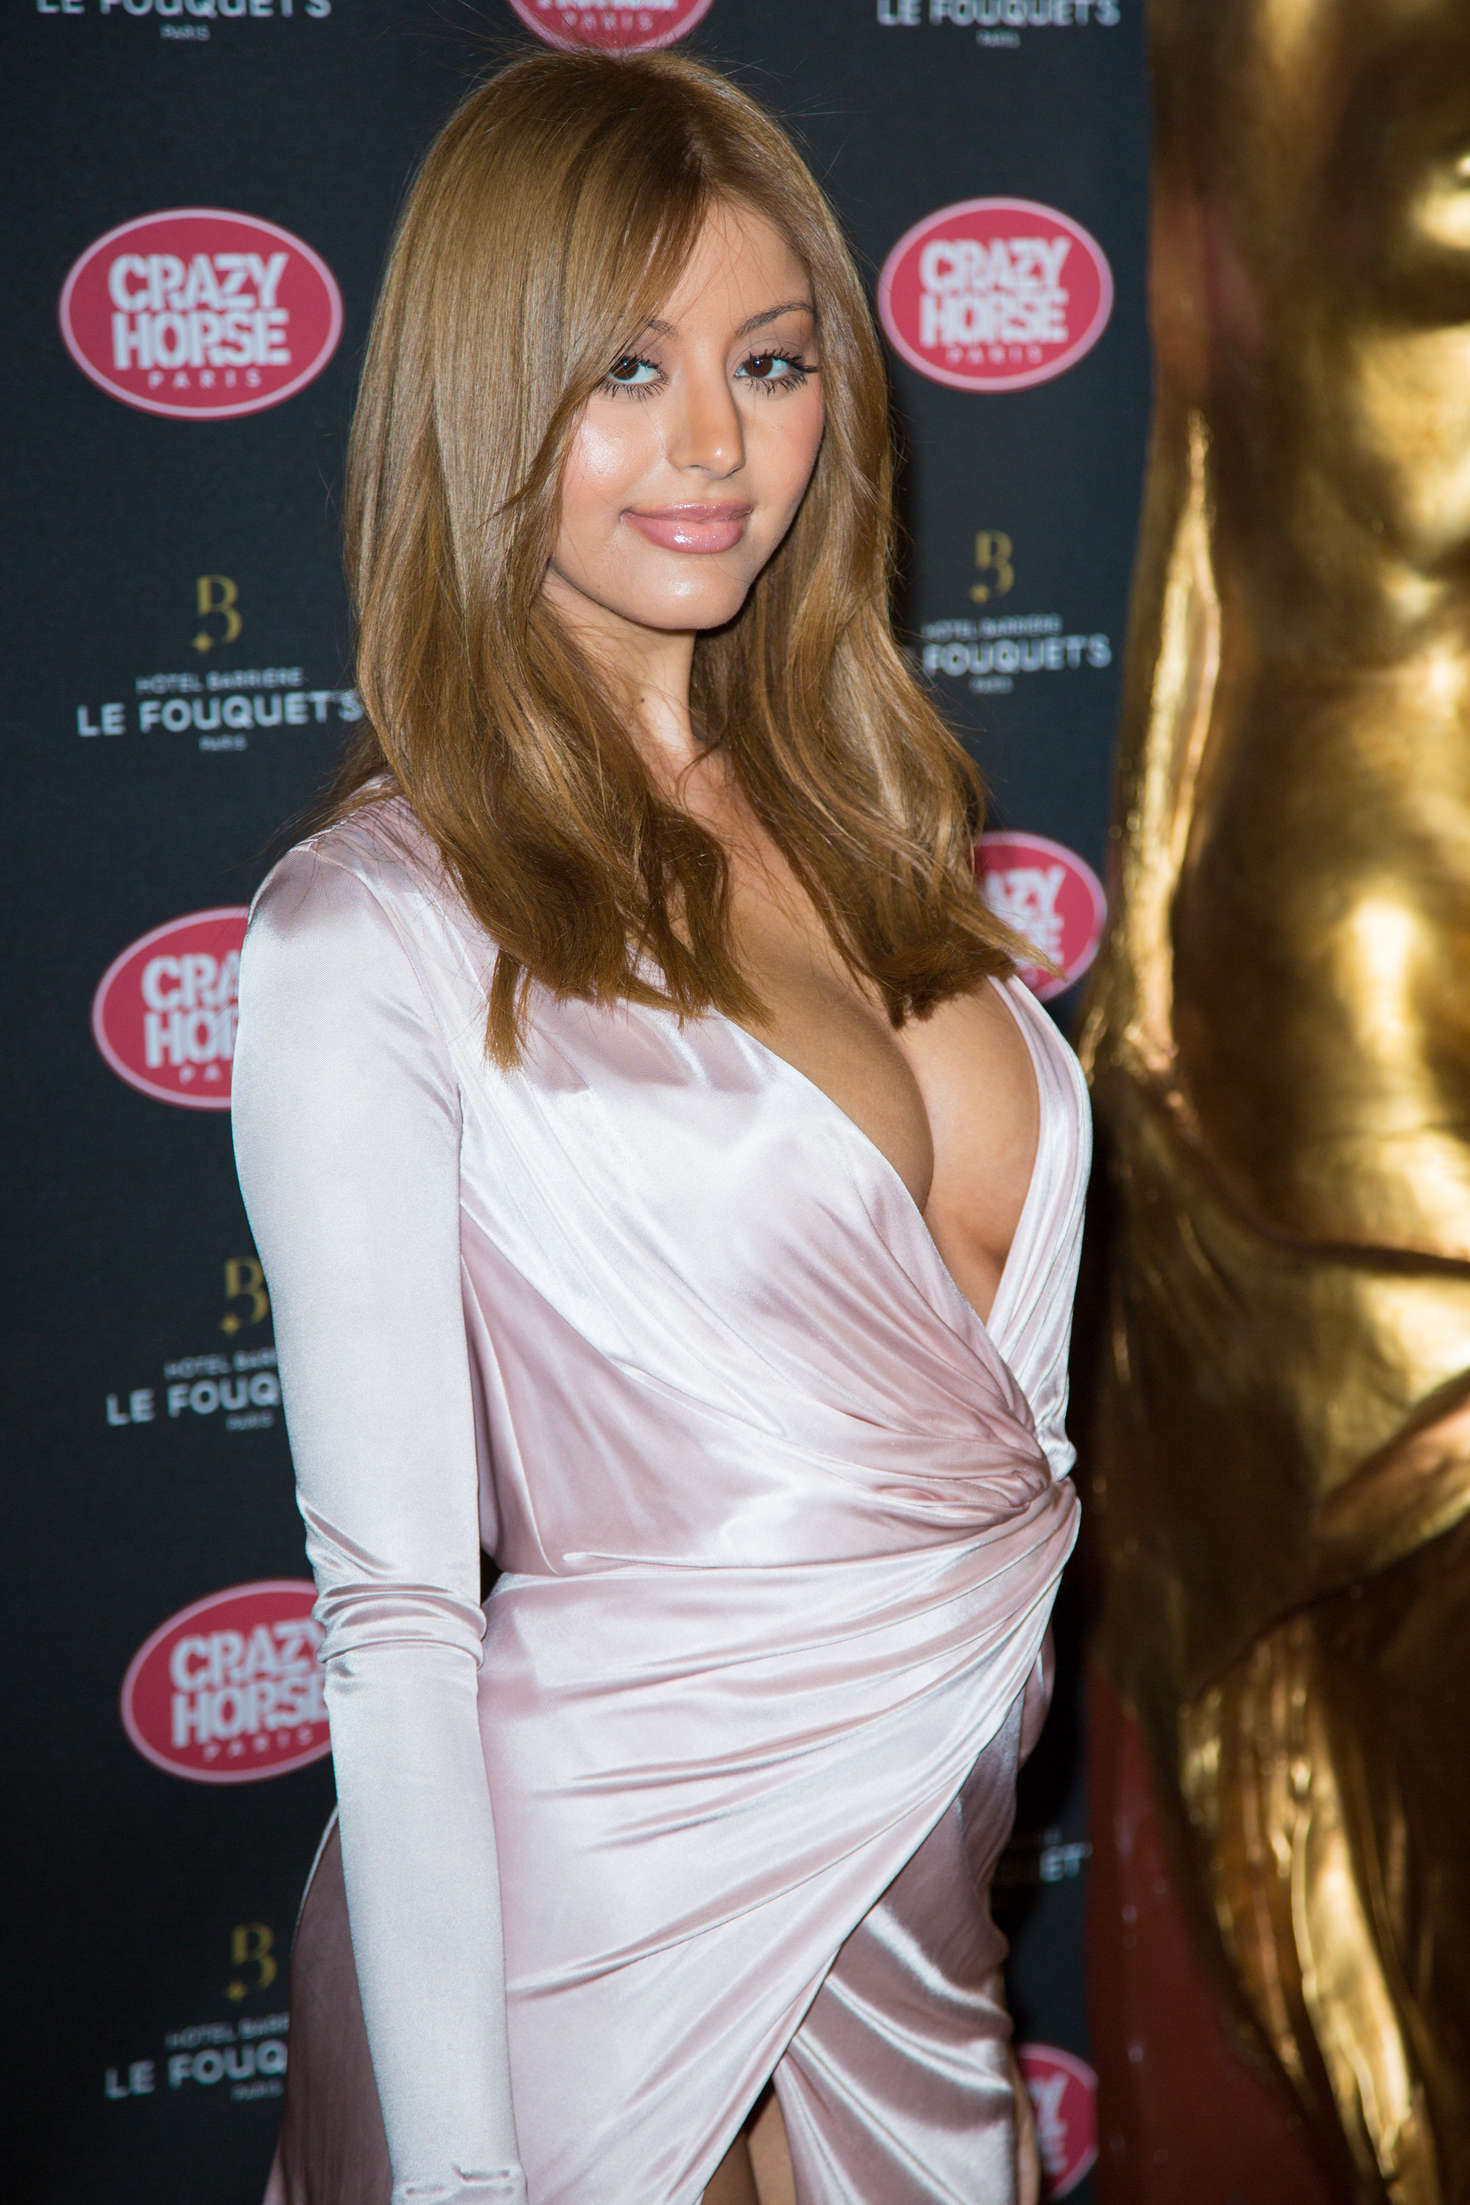 zahia-dehar-areola-slip-pussy-slip-at-crazy-horse-in-paris-28